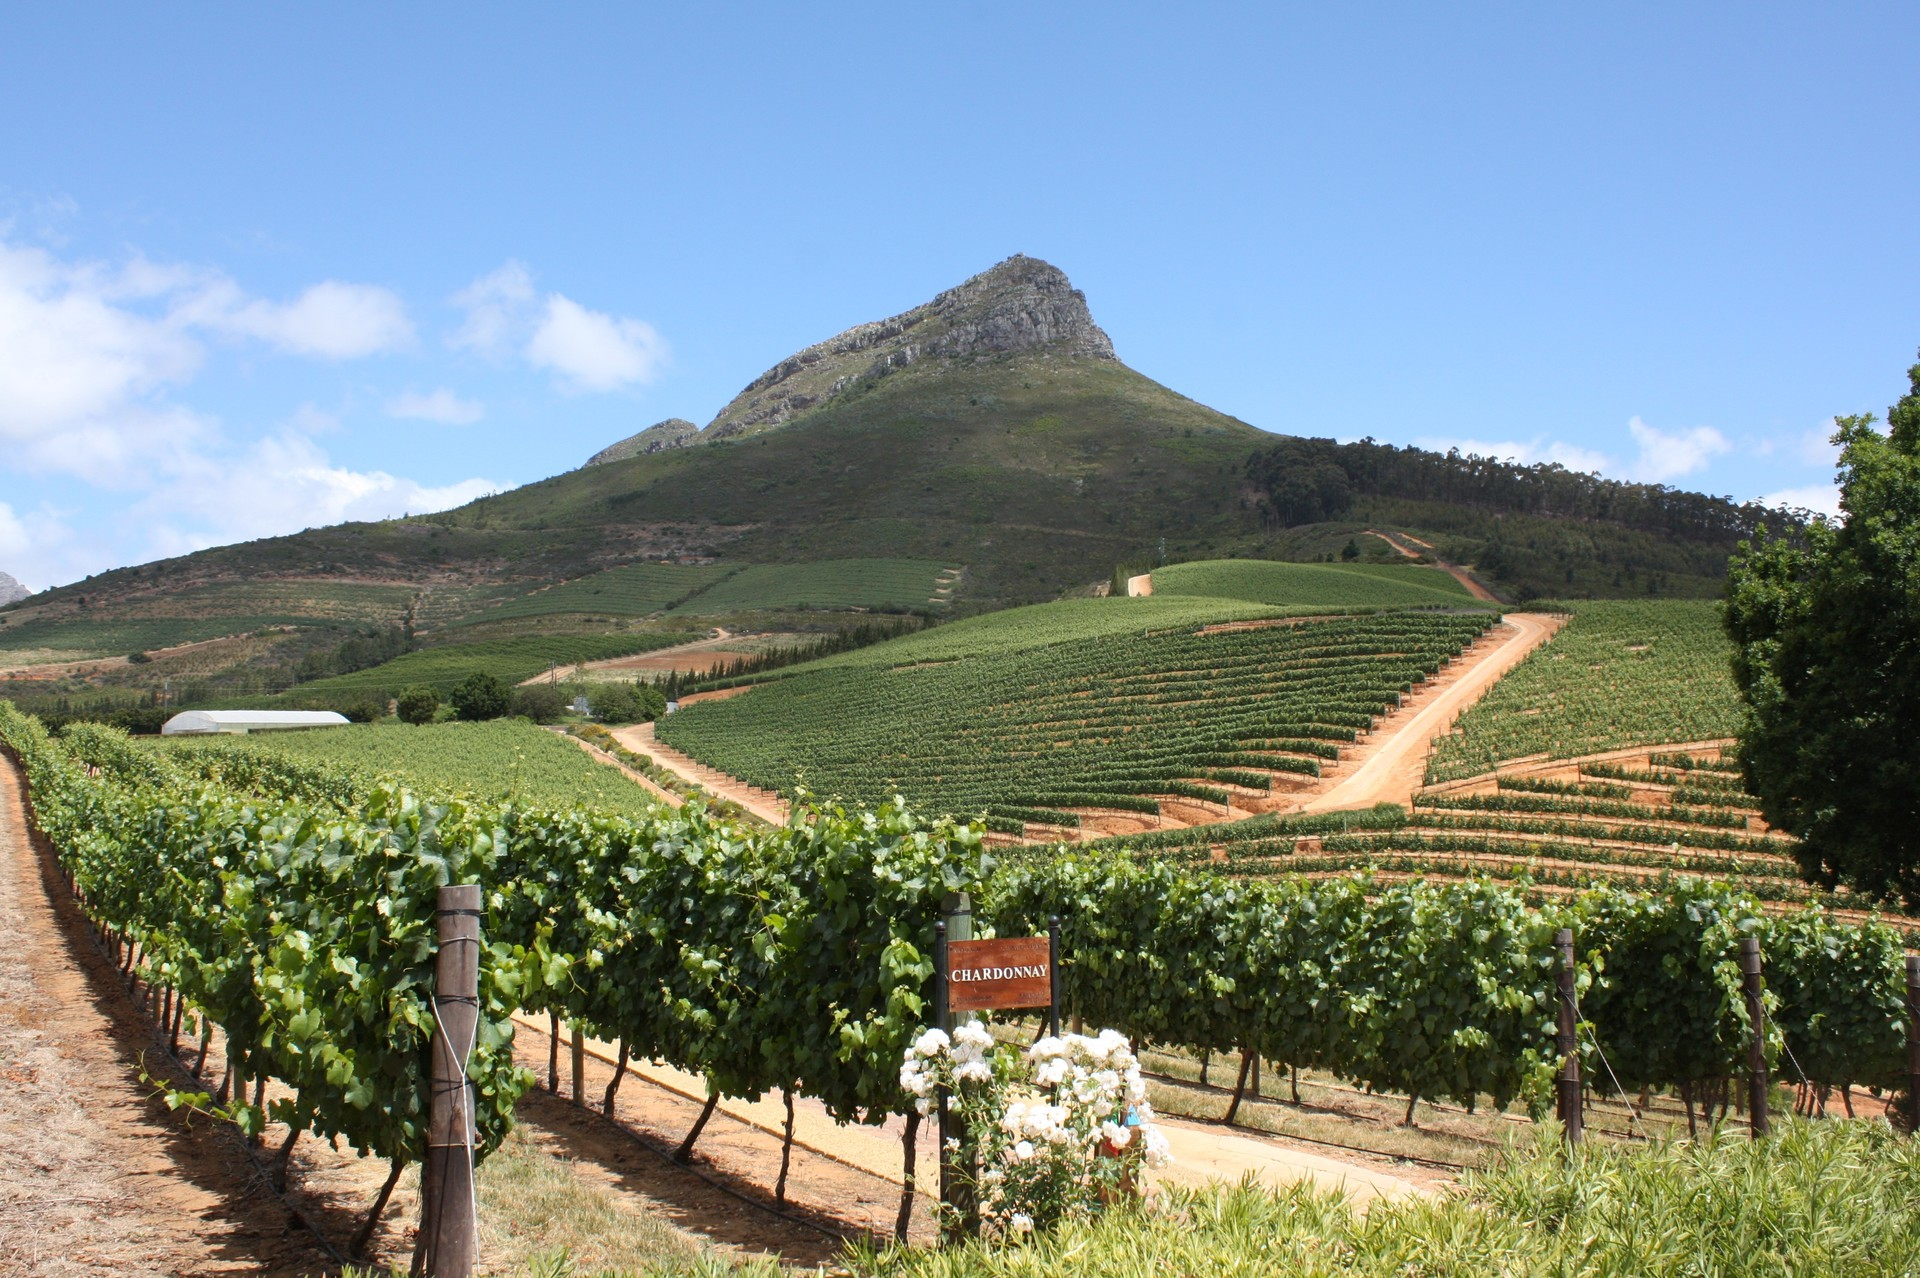 Delaire Graff vineyard in South Africa